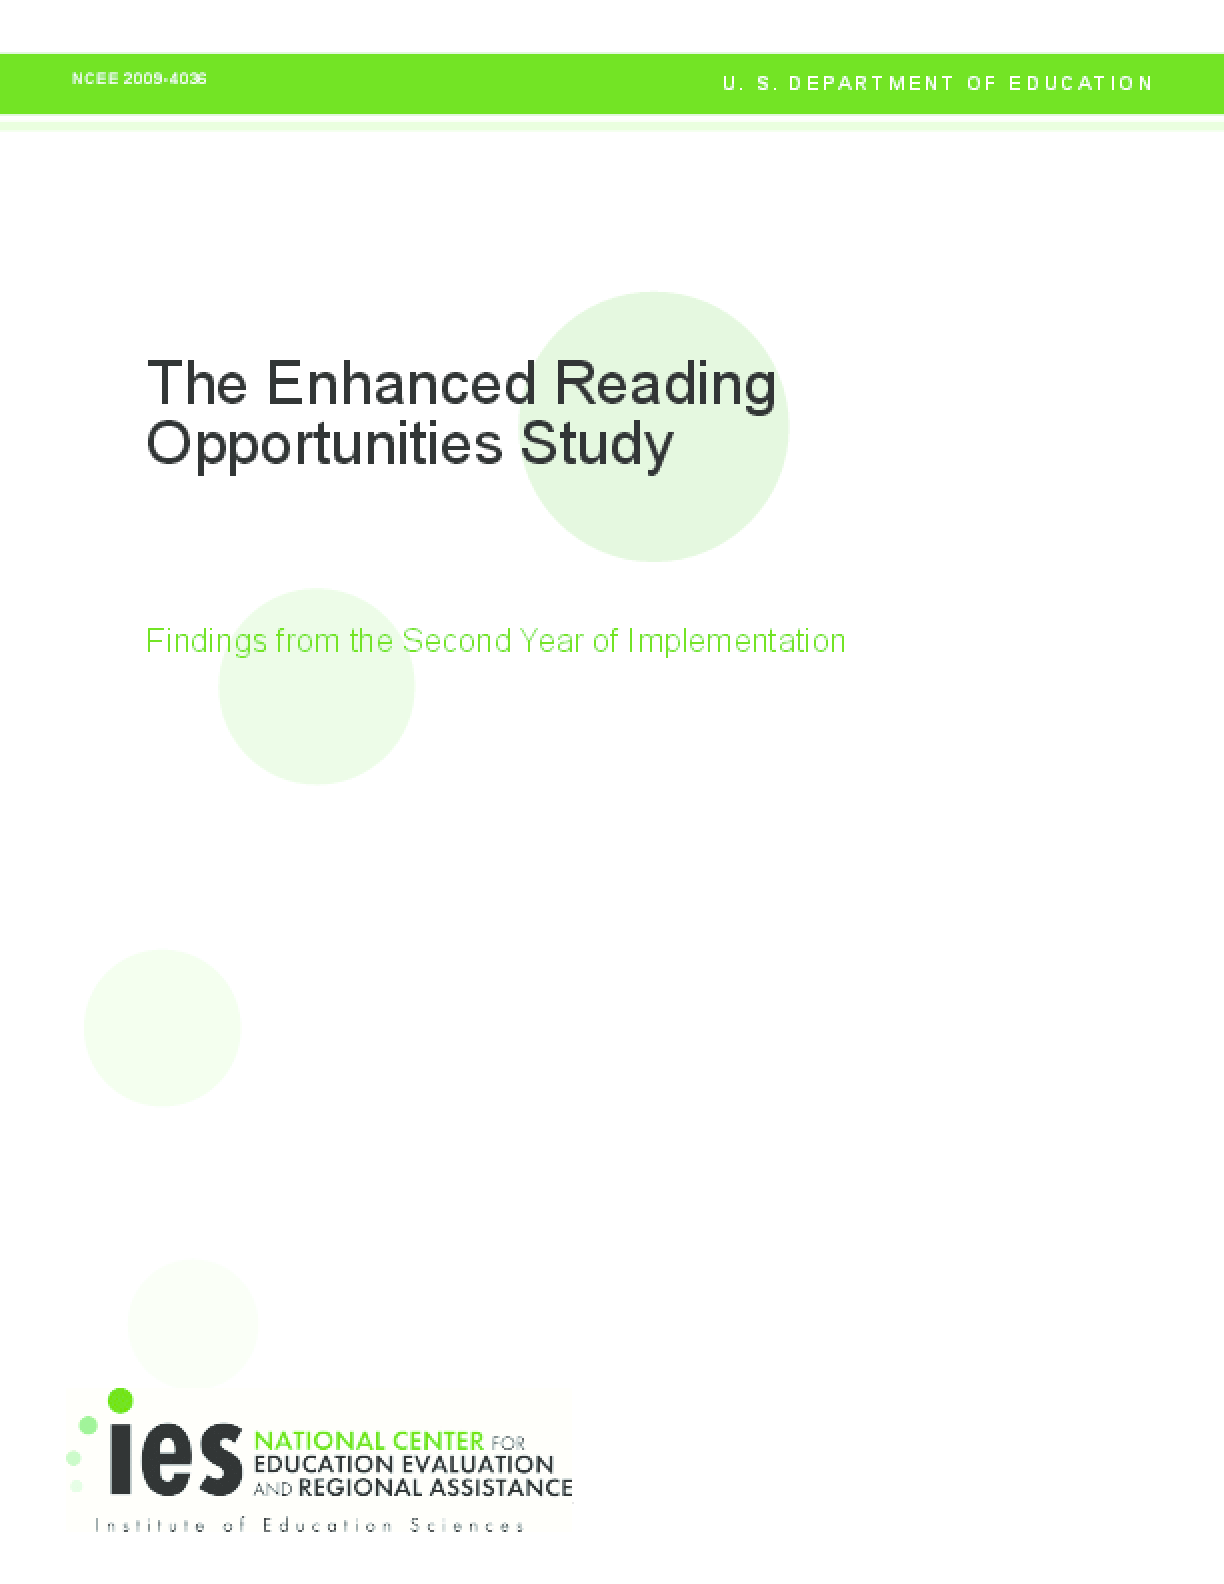 The Enhanced Reading Opportunities Study: Findings from the Second Year of Implementation